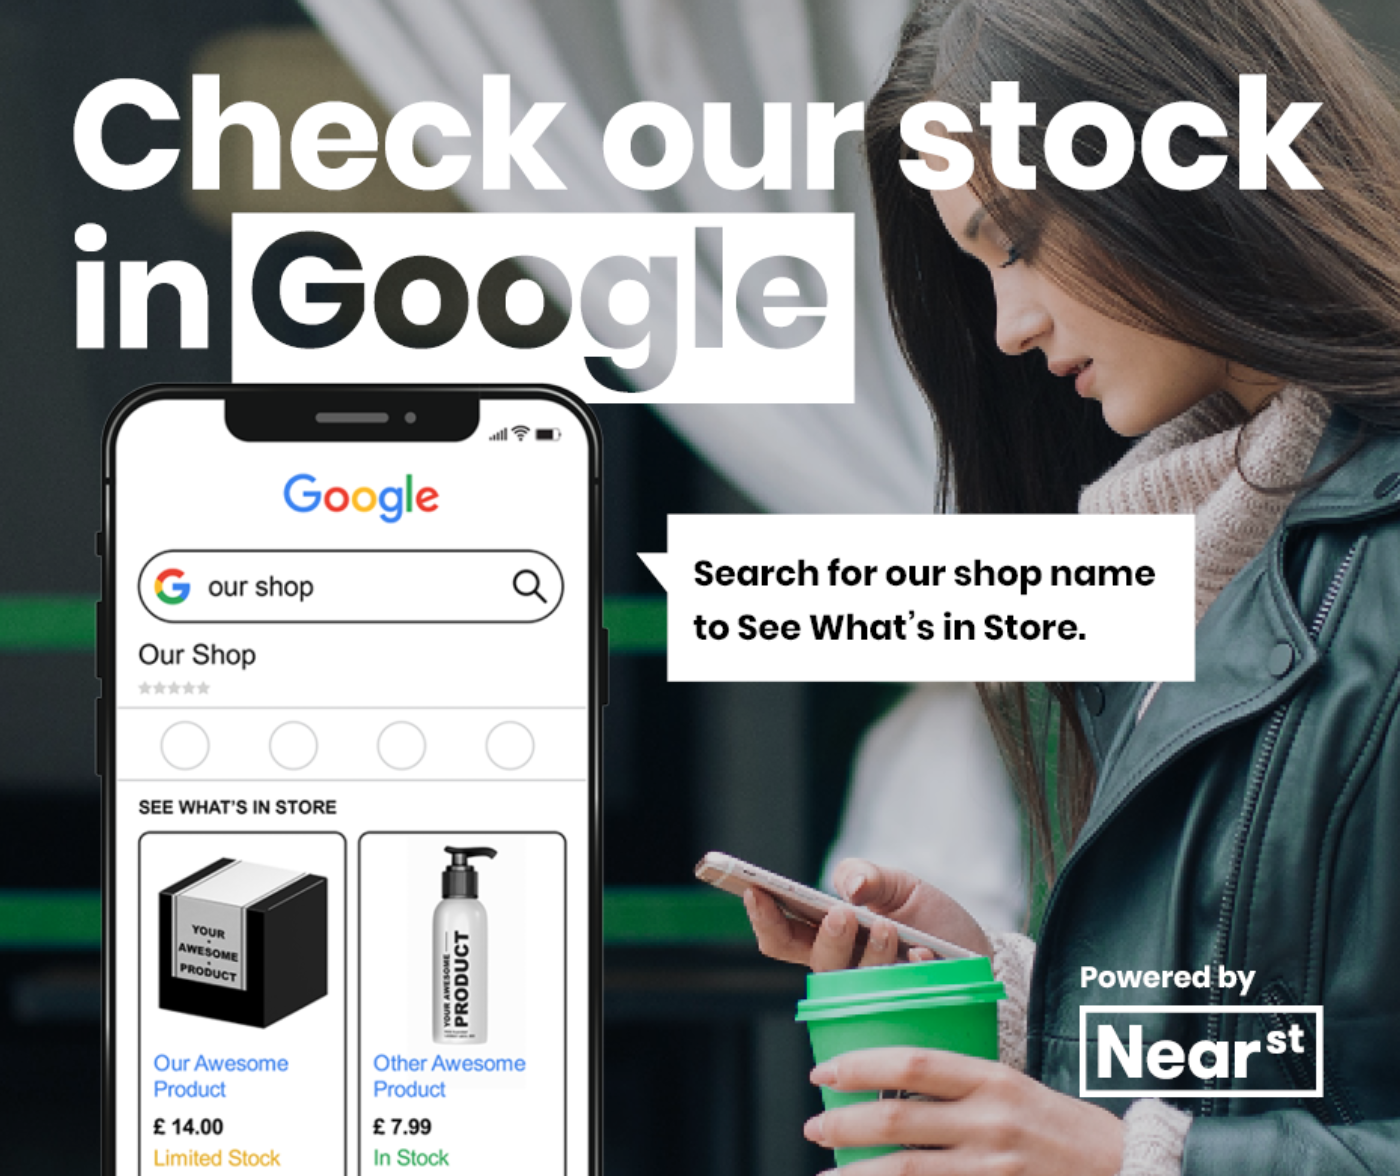 How you can check local shop stock in google